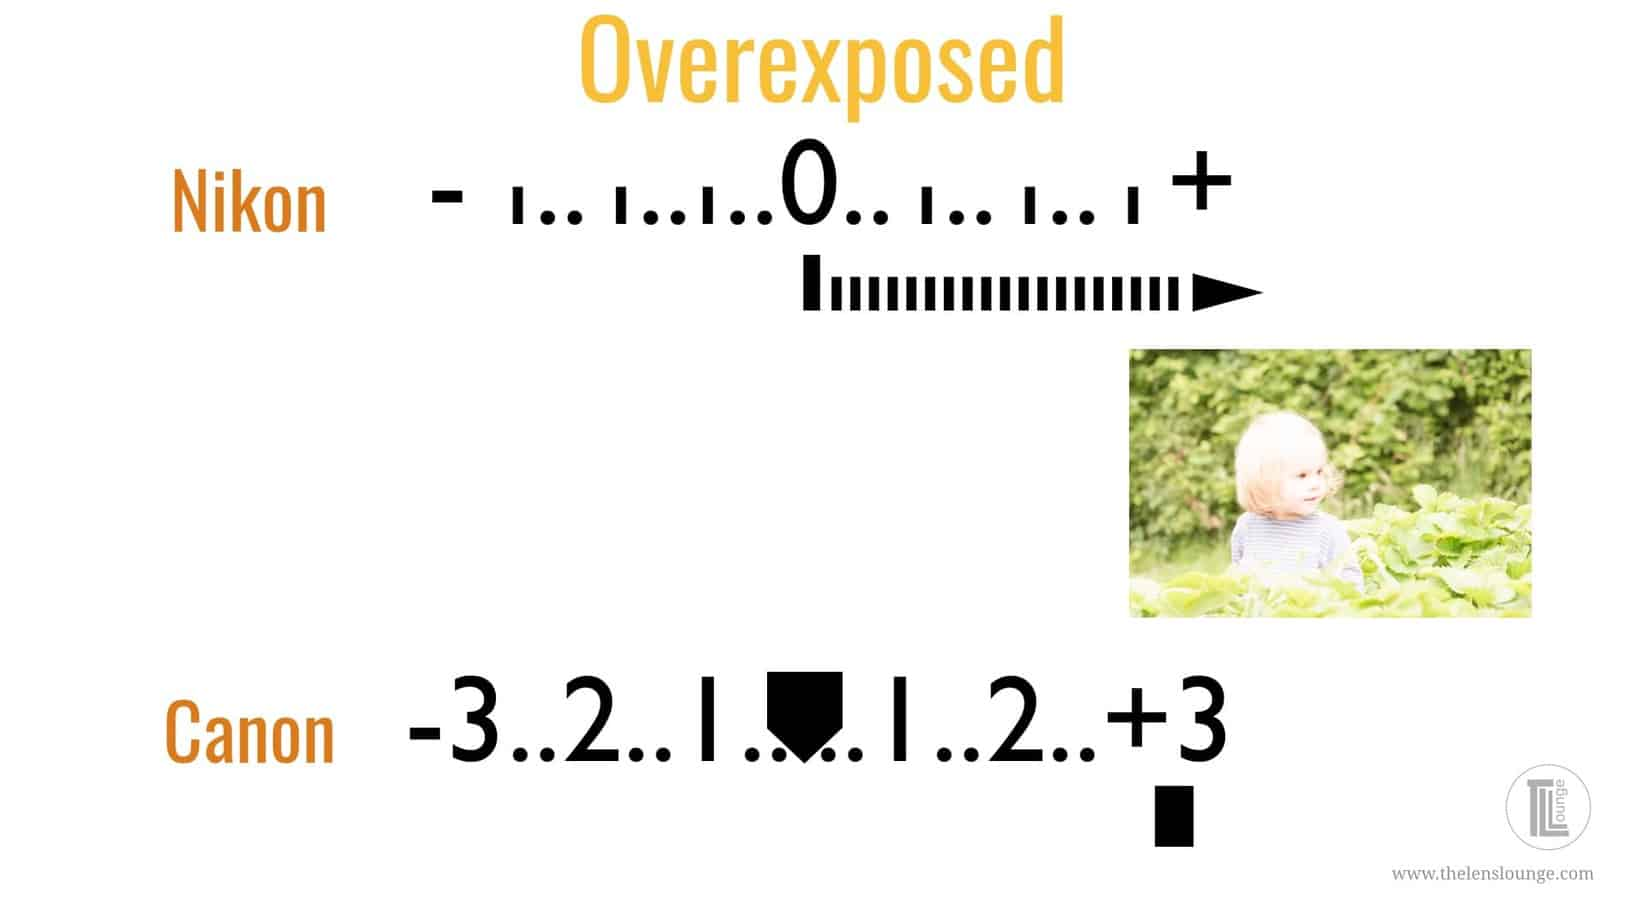 avoid an overexposed image